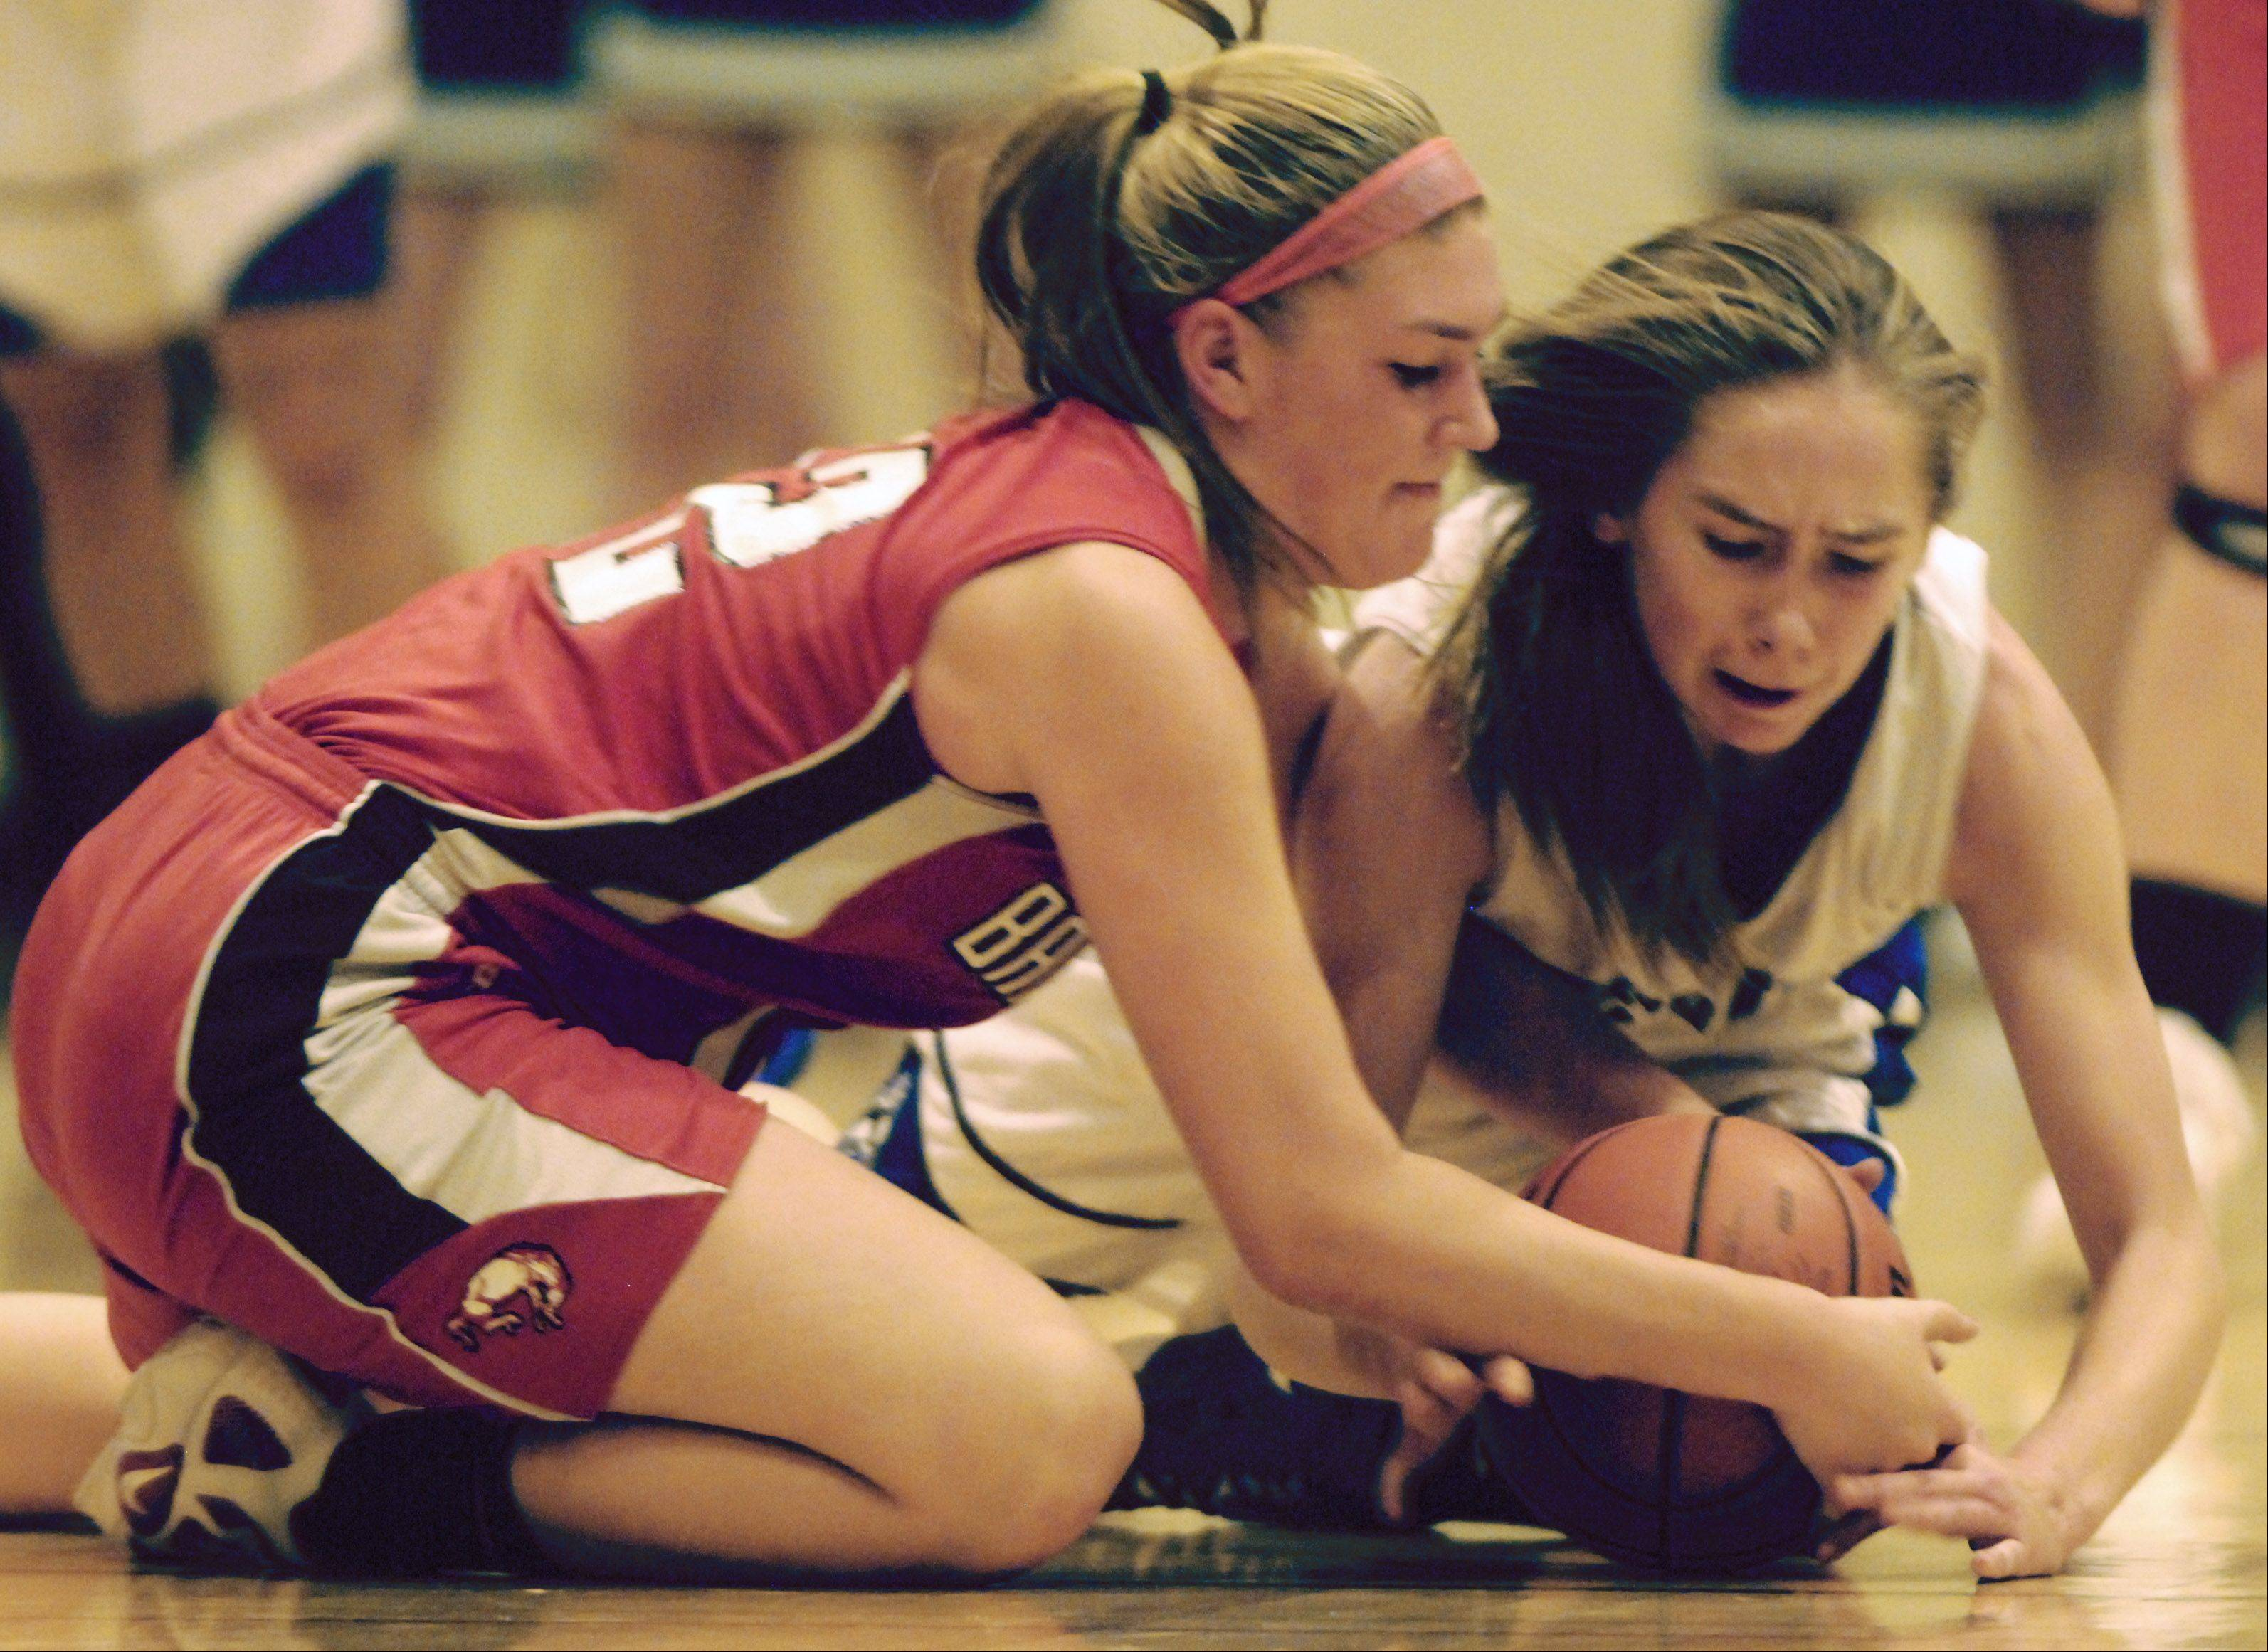 Barrington's Maddie Bartz, left, and Wheeling's Hailey Dammeier hit the floor chasing a loose ball during Tuesday's game.